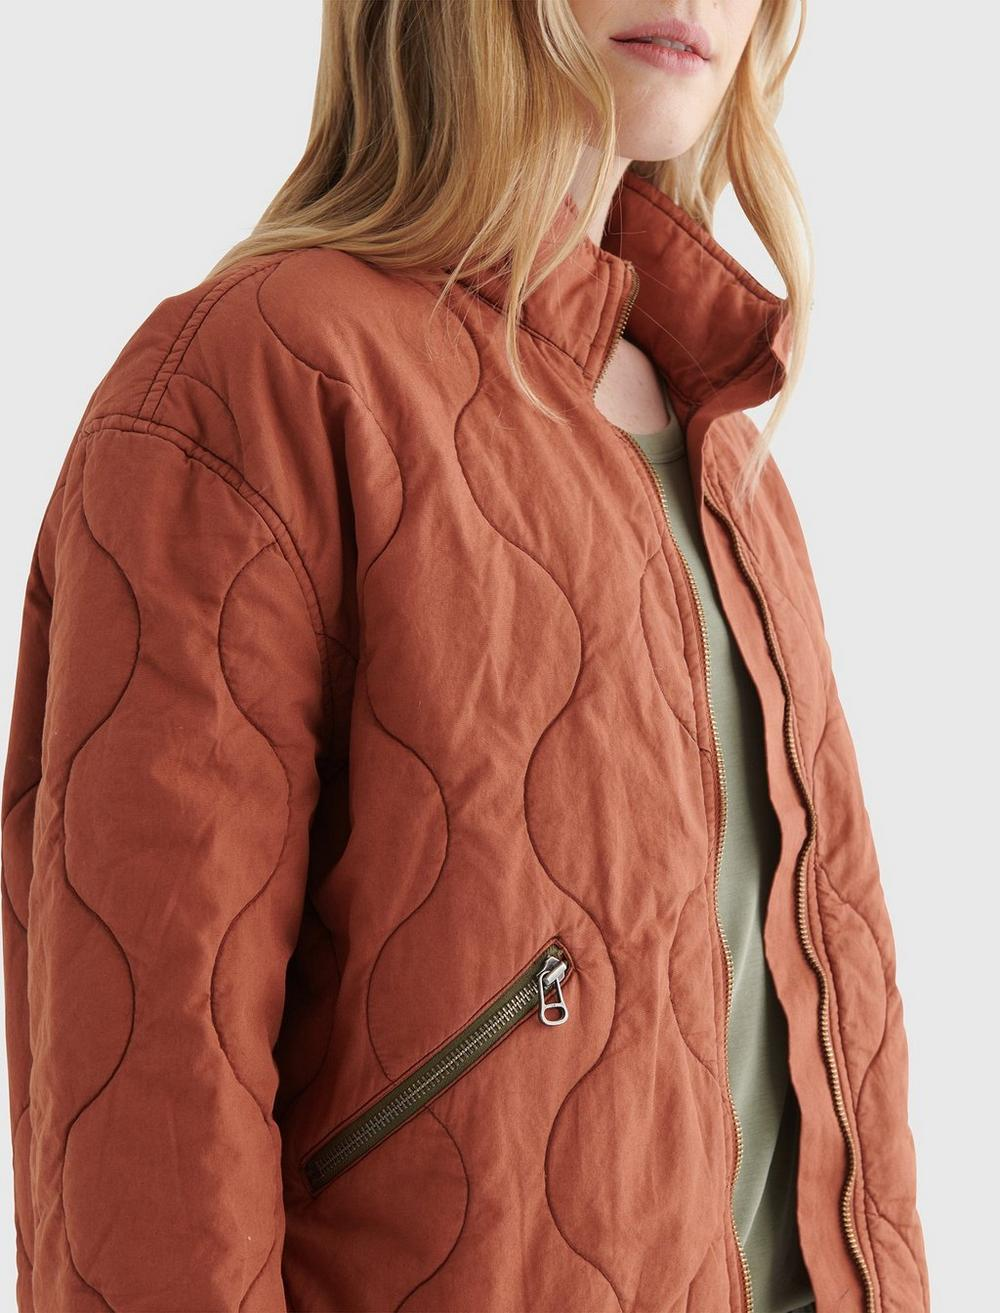 CARRY ON QUILTED JACKET, image 4